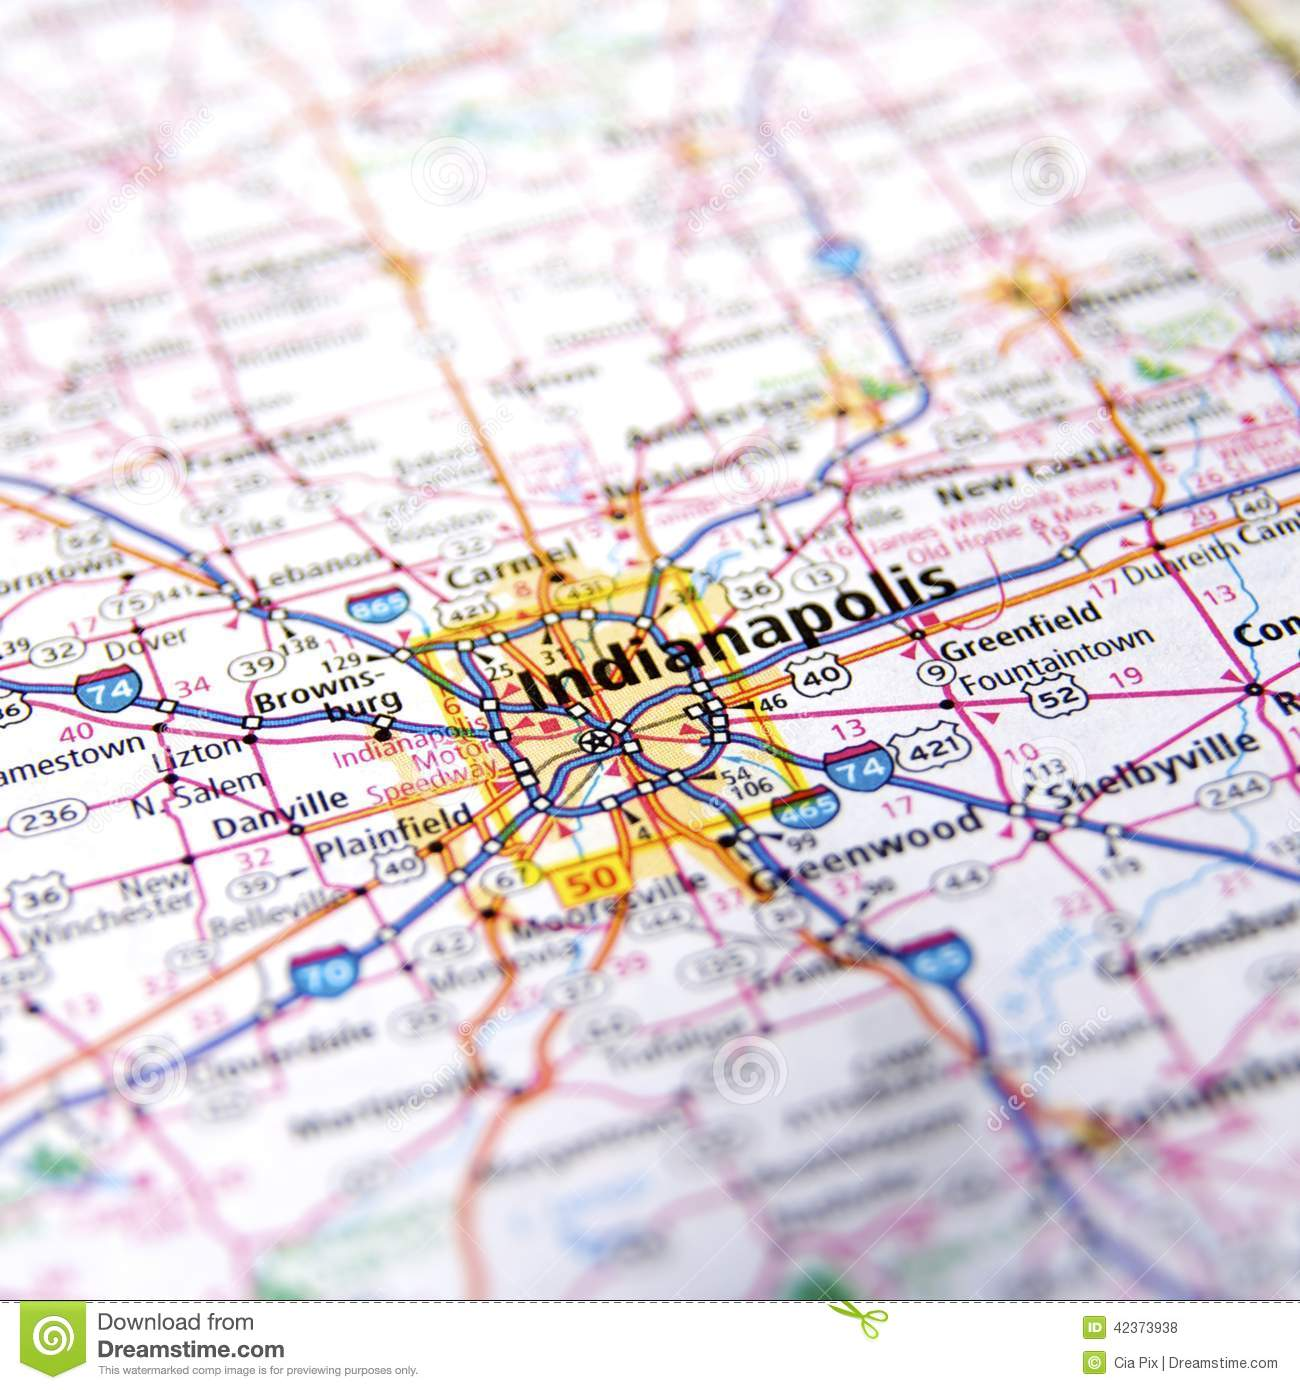 IndianaUSA Map Royalty Free Stock Images Image - Indiana on a map of the usa